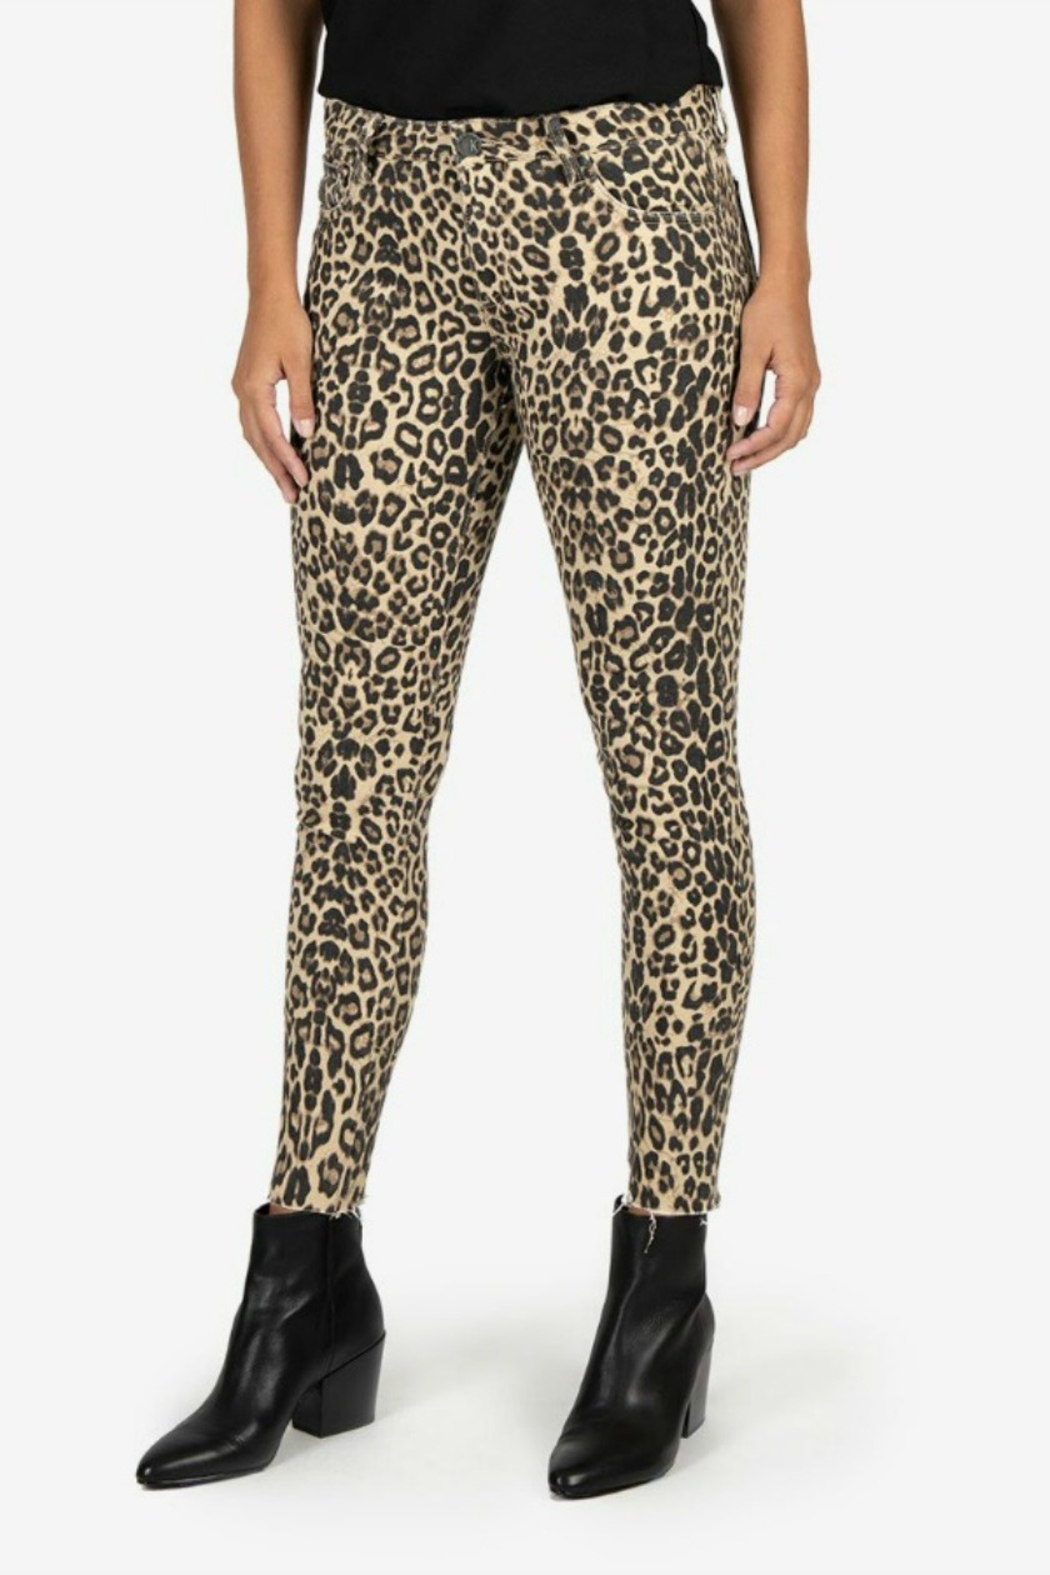 Kut from the Kloth DONNA LEOPARD - Main Image